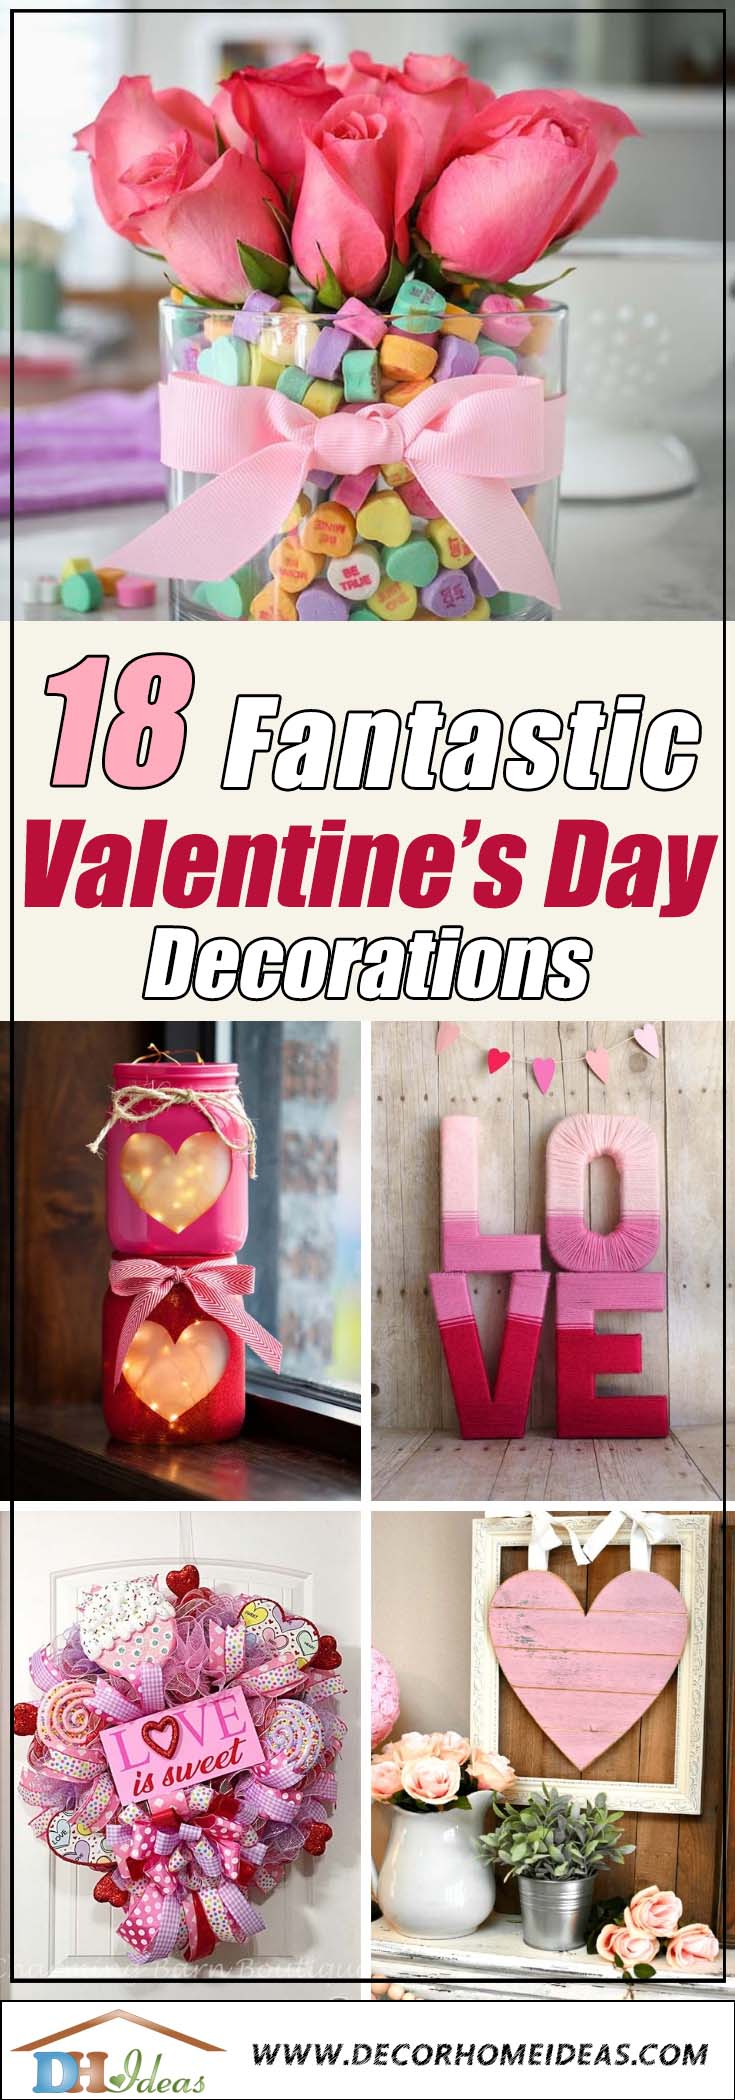 Valentine's Day Decorations #valentinescraft #decor #love #crafts #diy #decorhomeideas